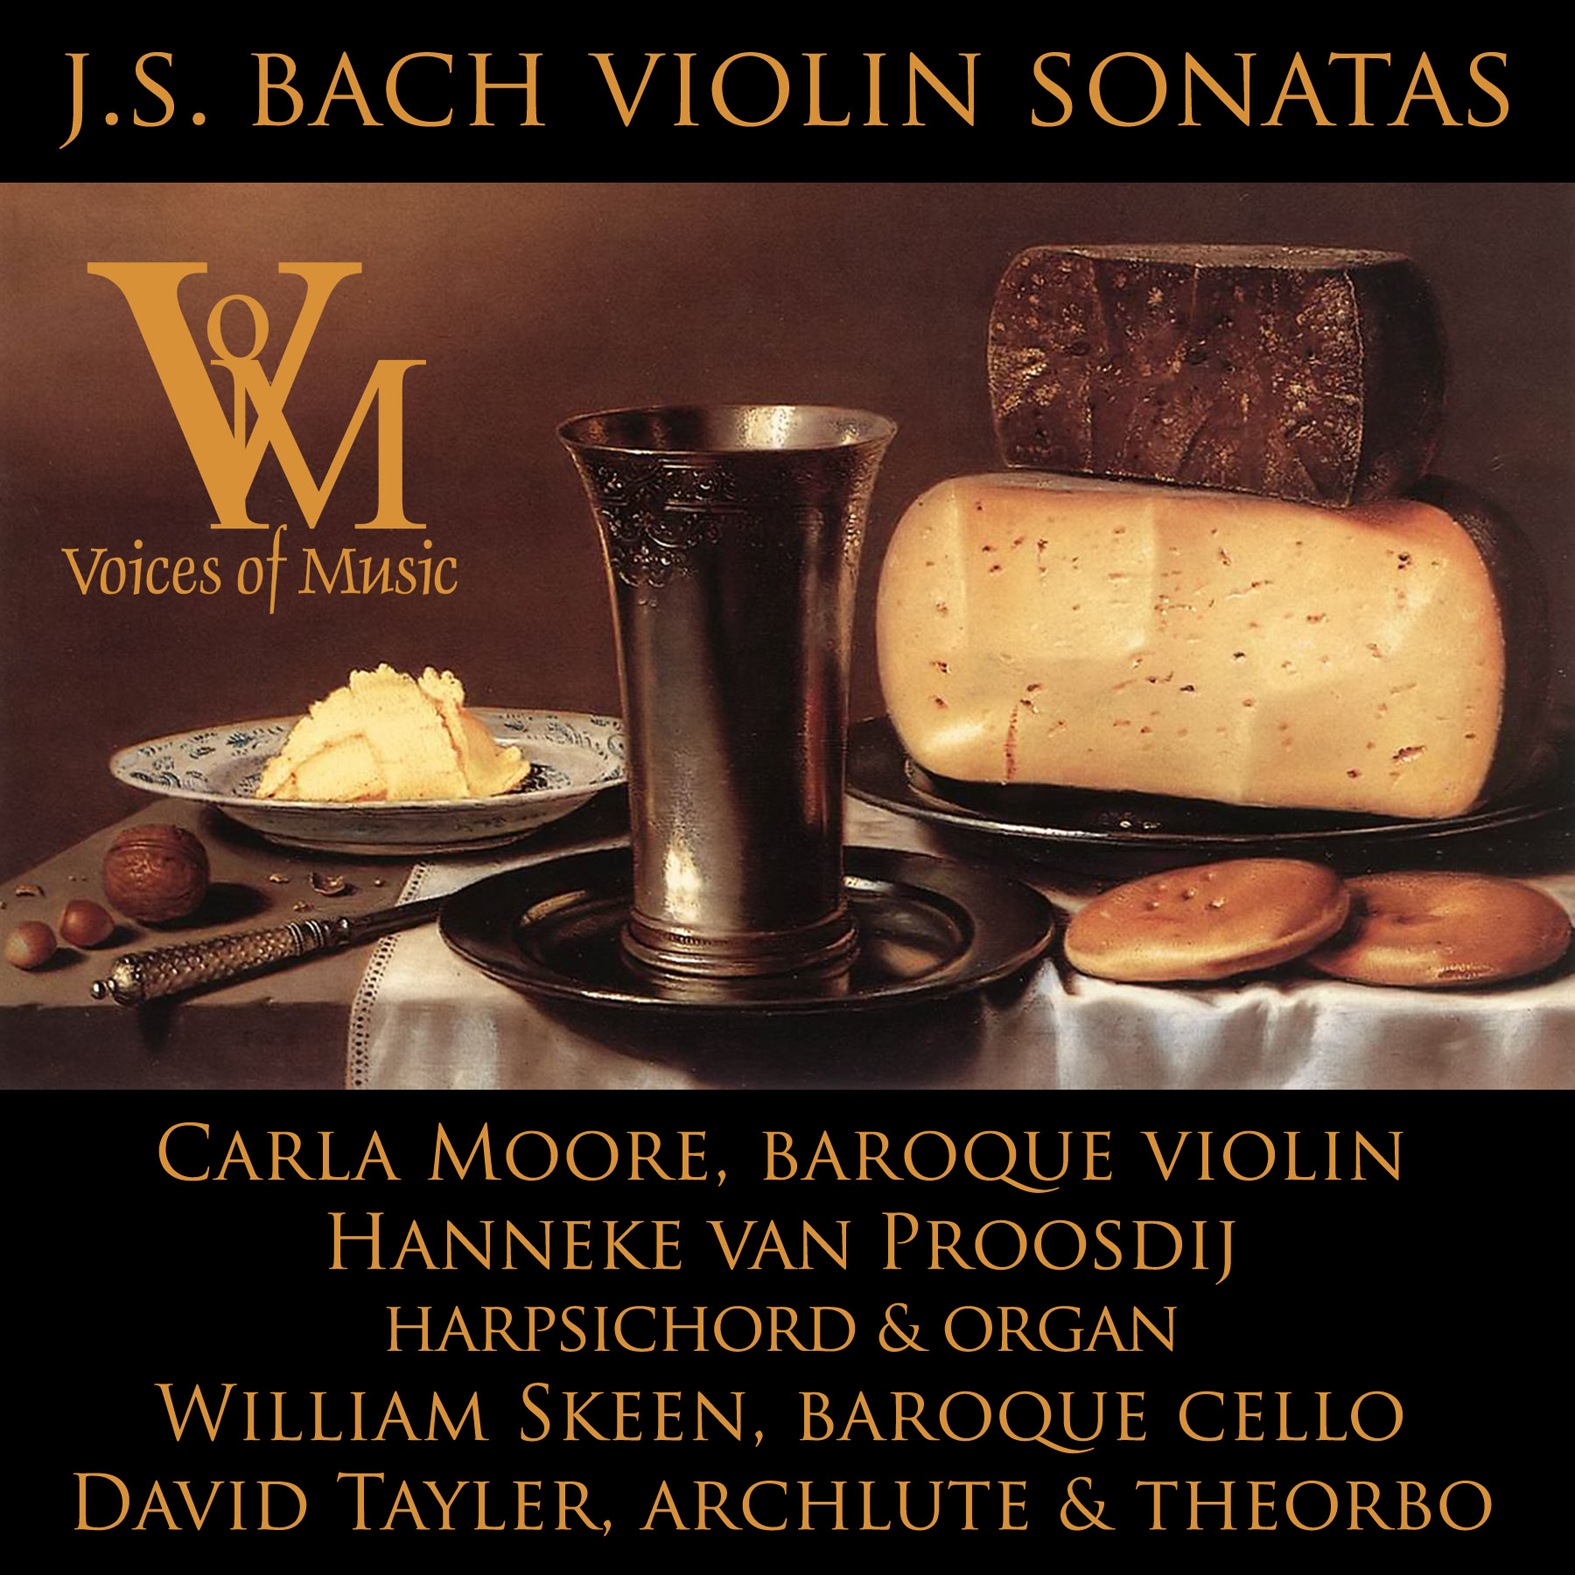 JS Bach Violin Sonatas : Voices of Music